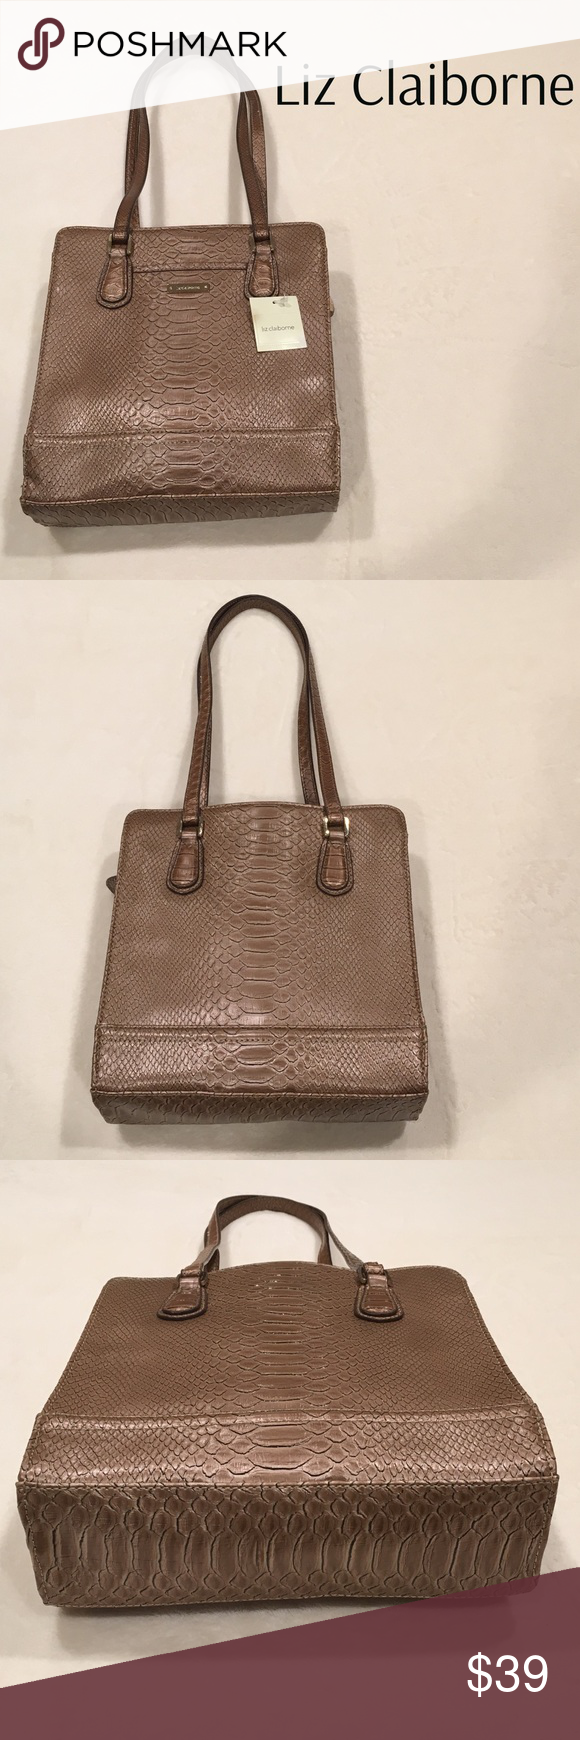 Tan Faux Lizard Leather with Silver Spots